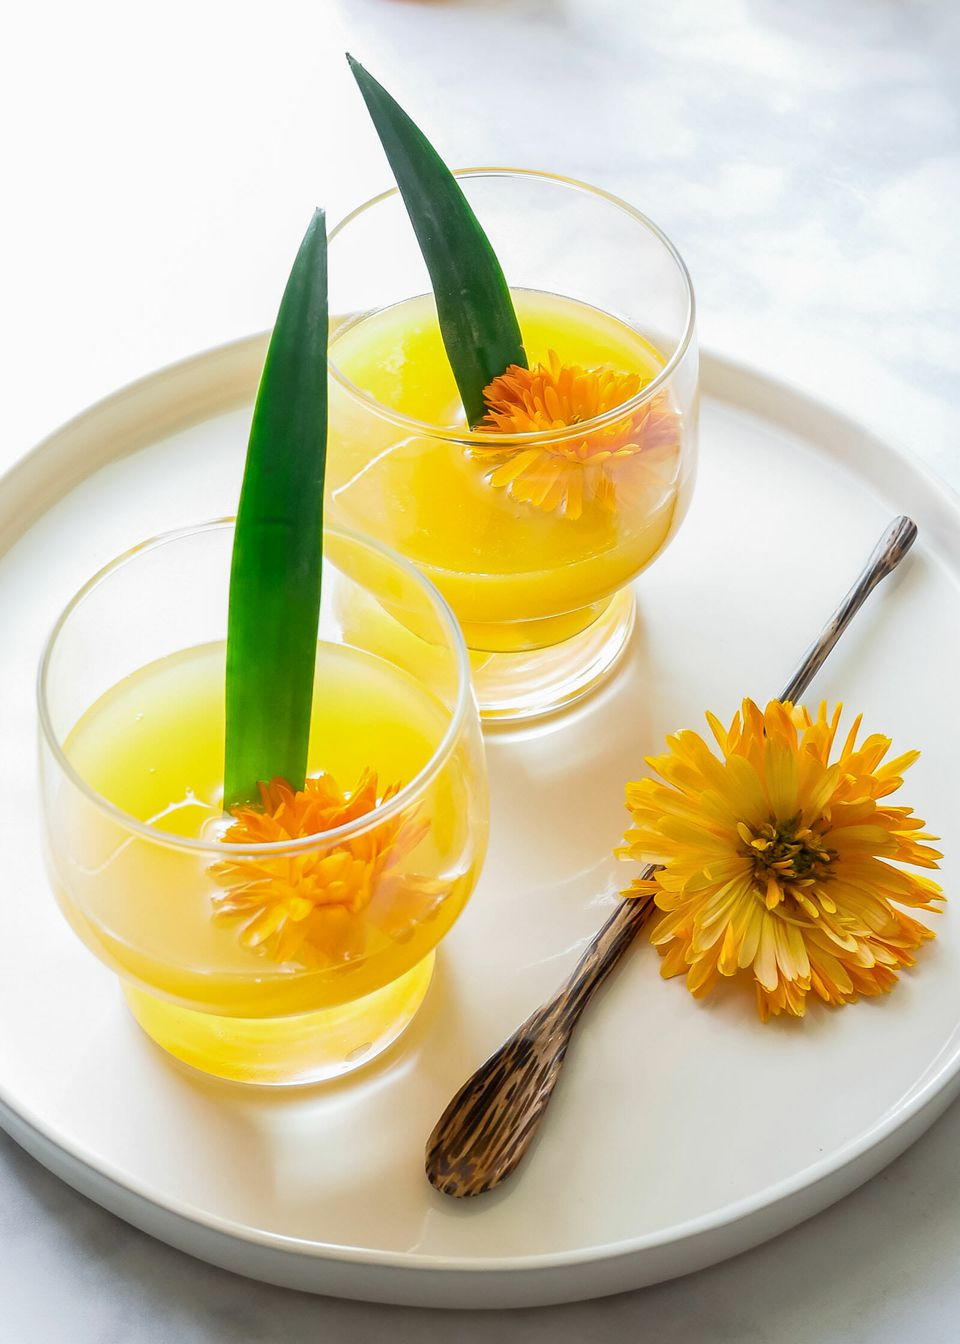 A white tray has two glasses of cava mimosa with an orange flower an d green pineapple leaf decorating each one. A stir stick and a third flower is on the tray.